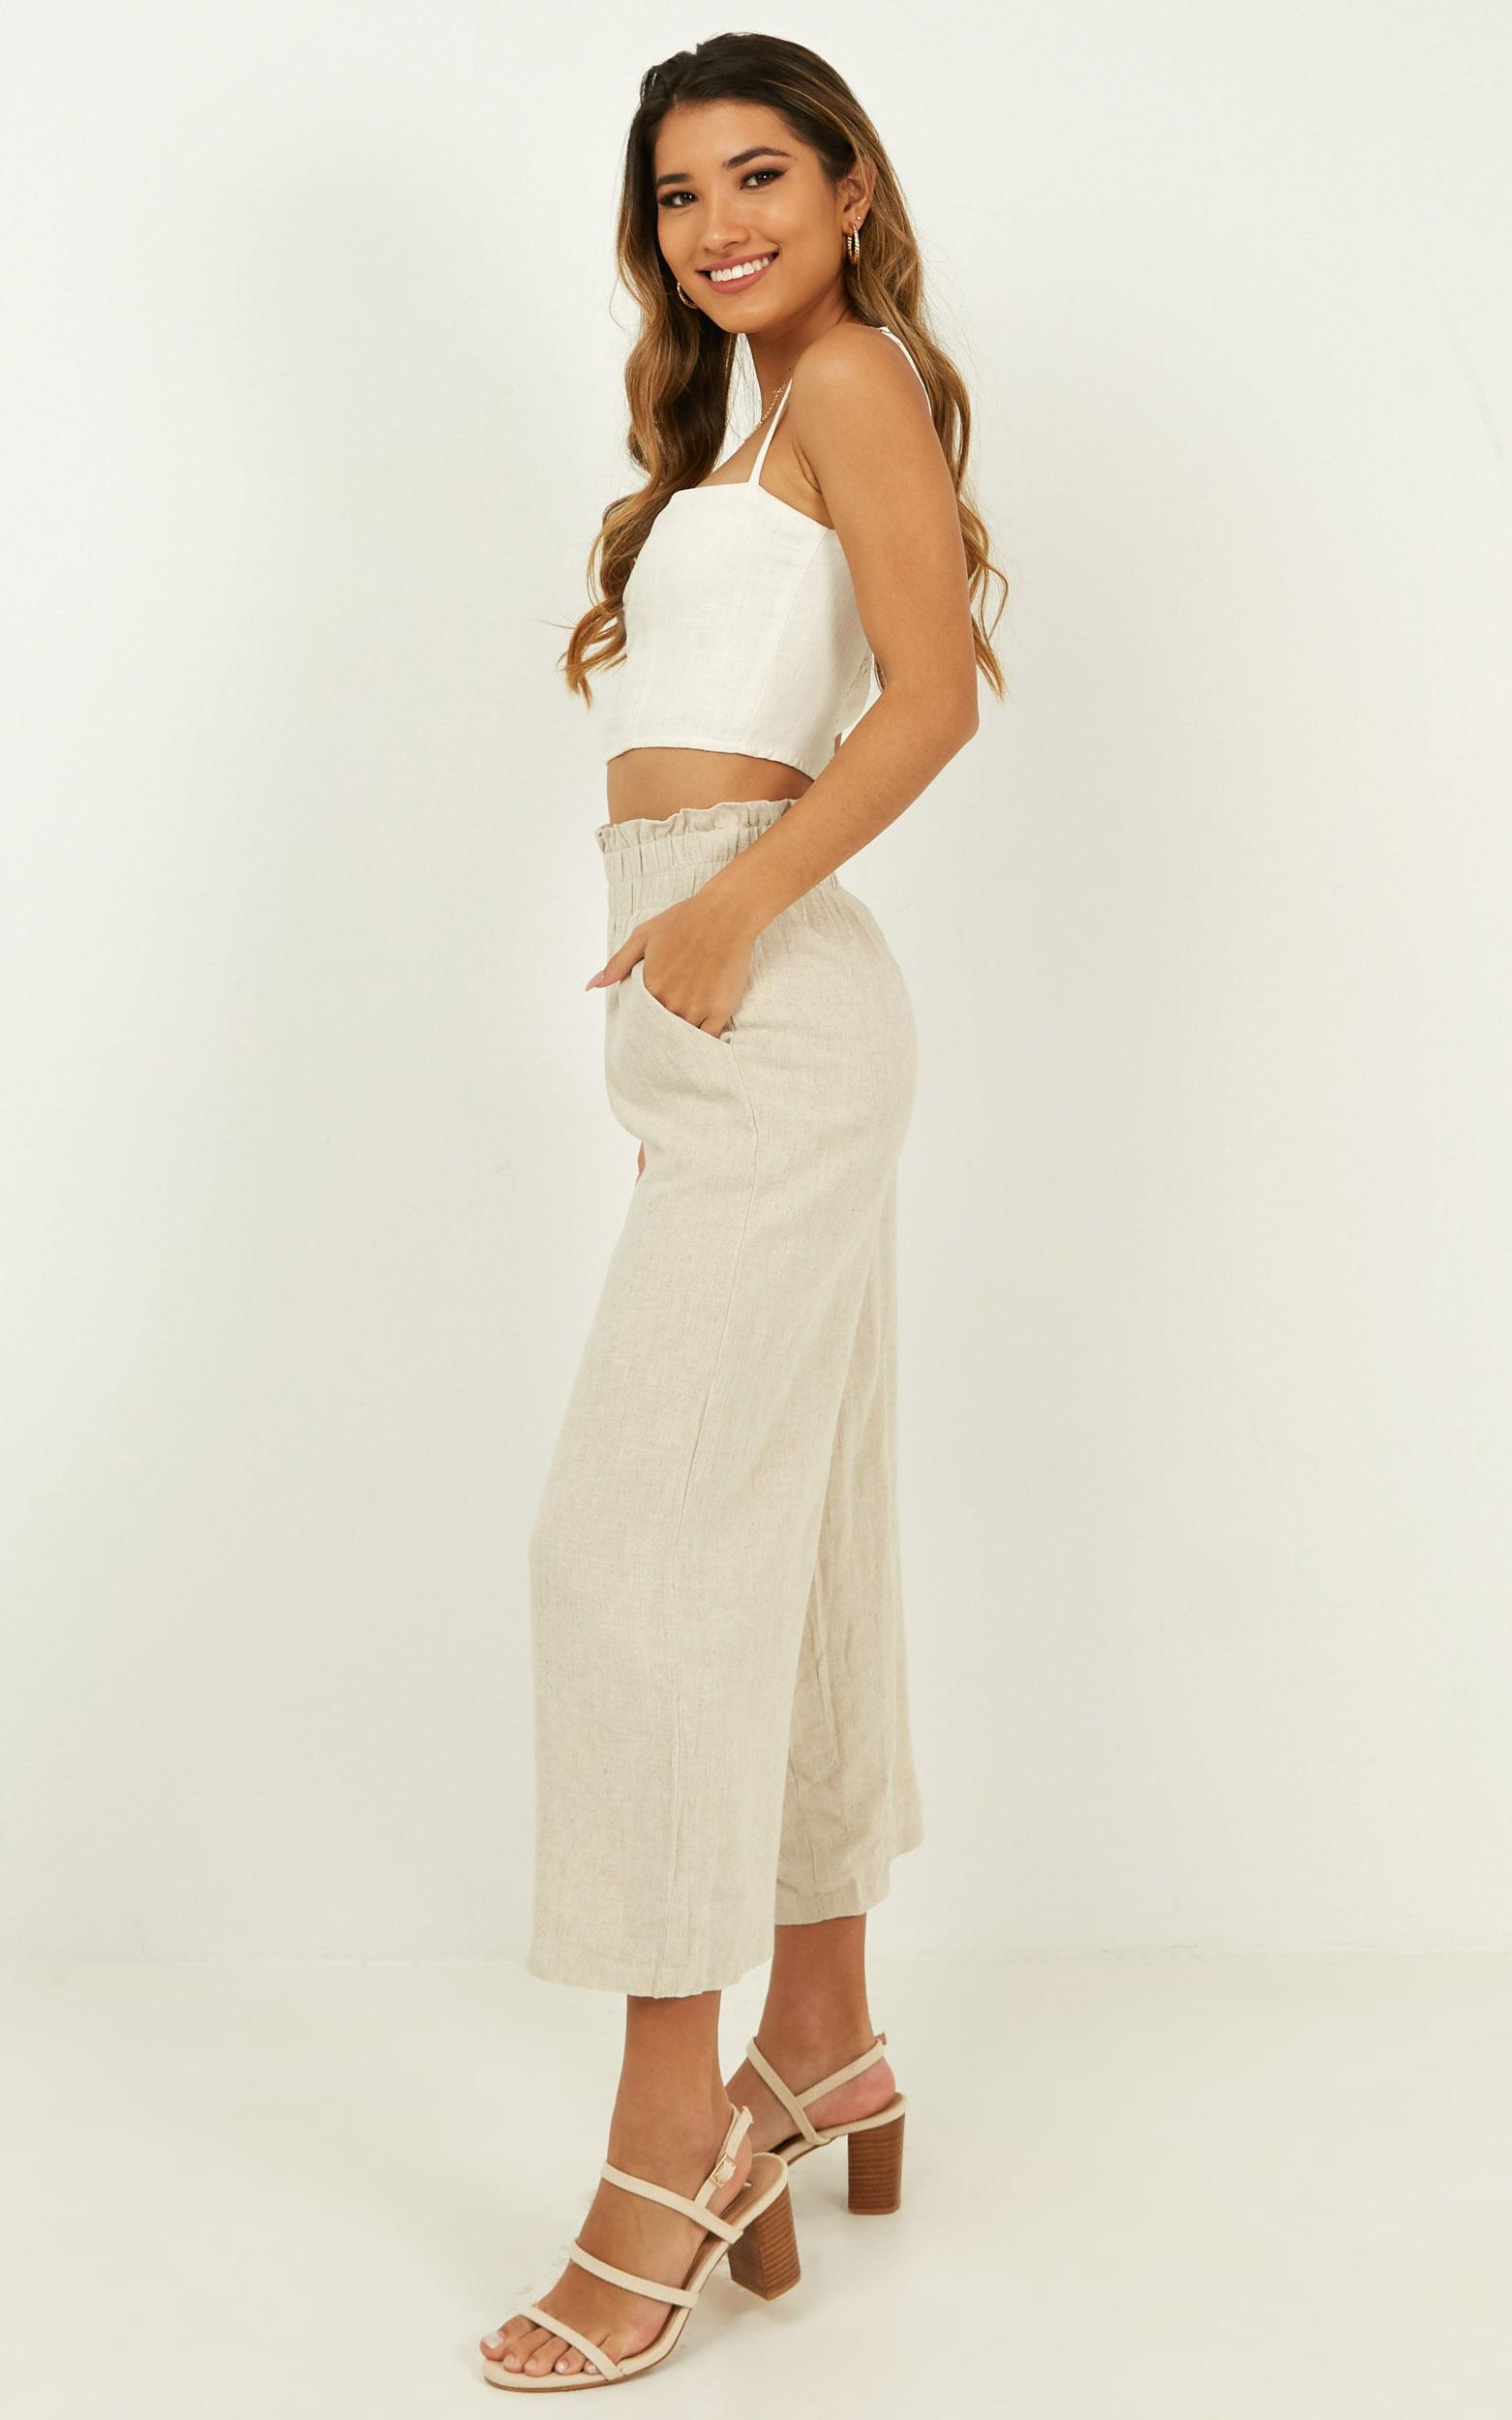 Sunny Times Pants In beige linen look - 12 (L), Beige, hi-res image number null